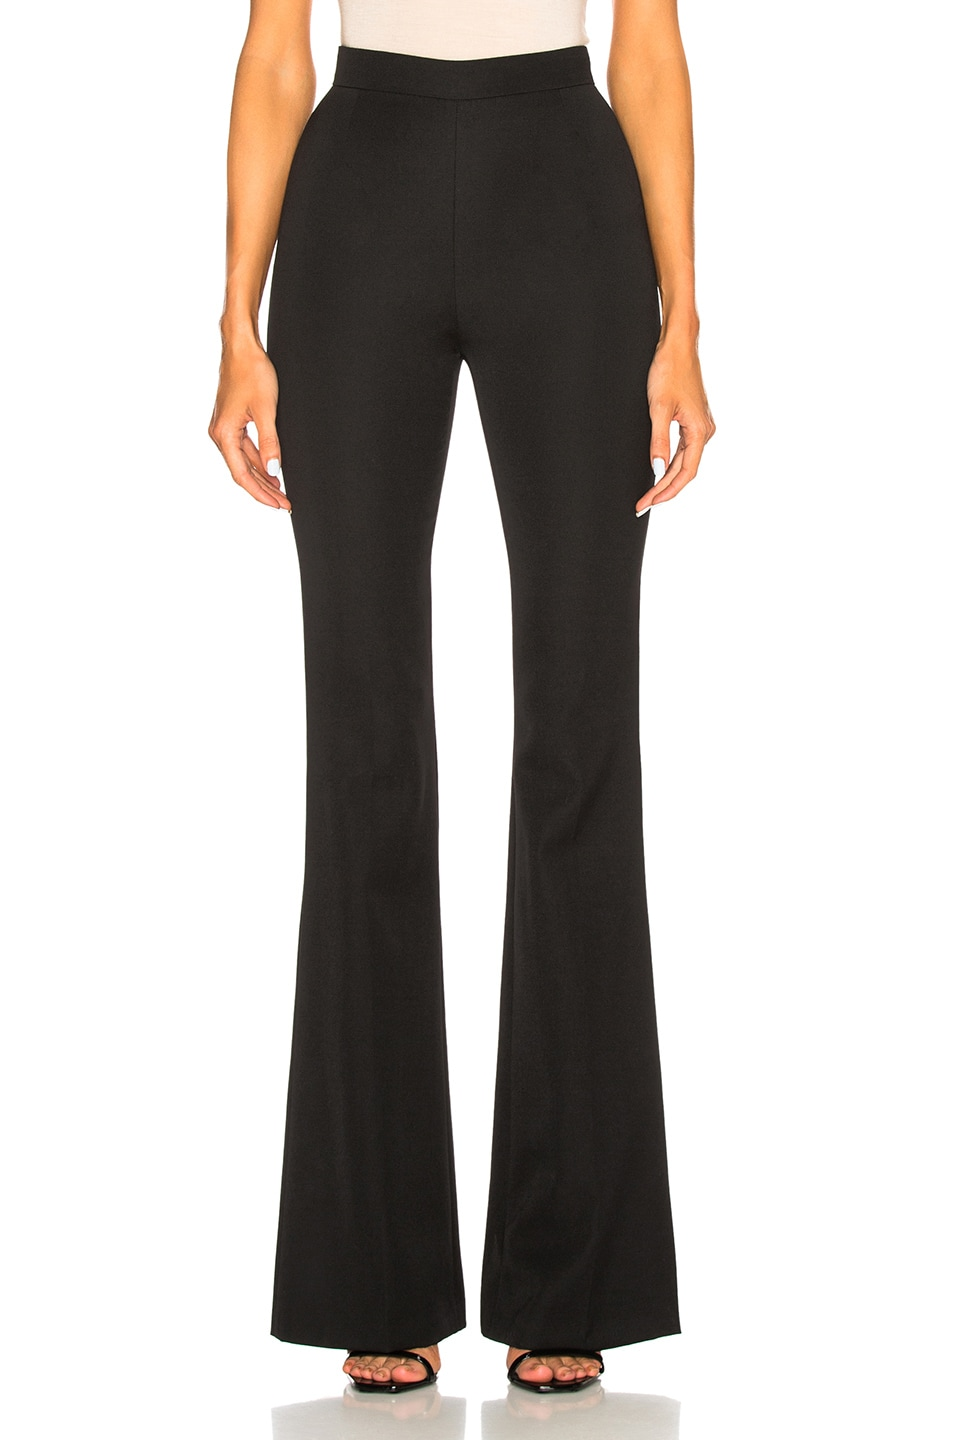 c735d96c592d Image 1 of Pierre Balmain High Waisted Flare Trouser Pants in Black